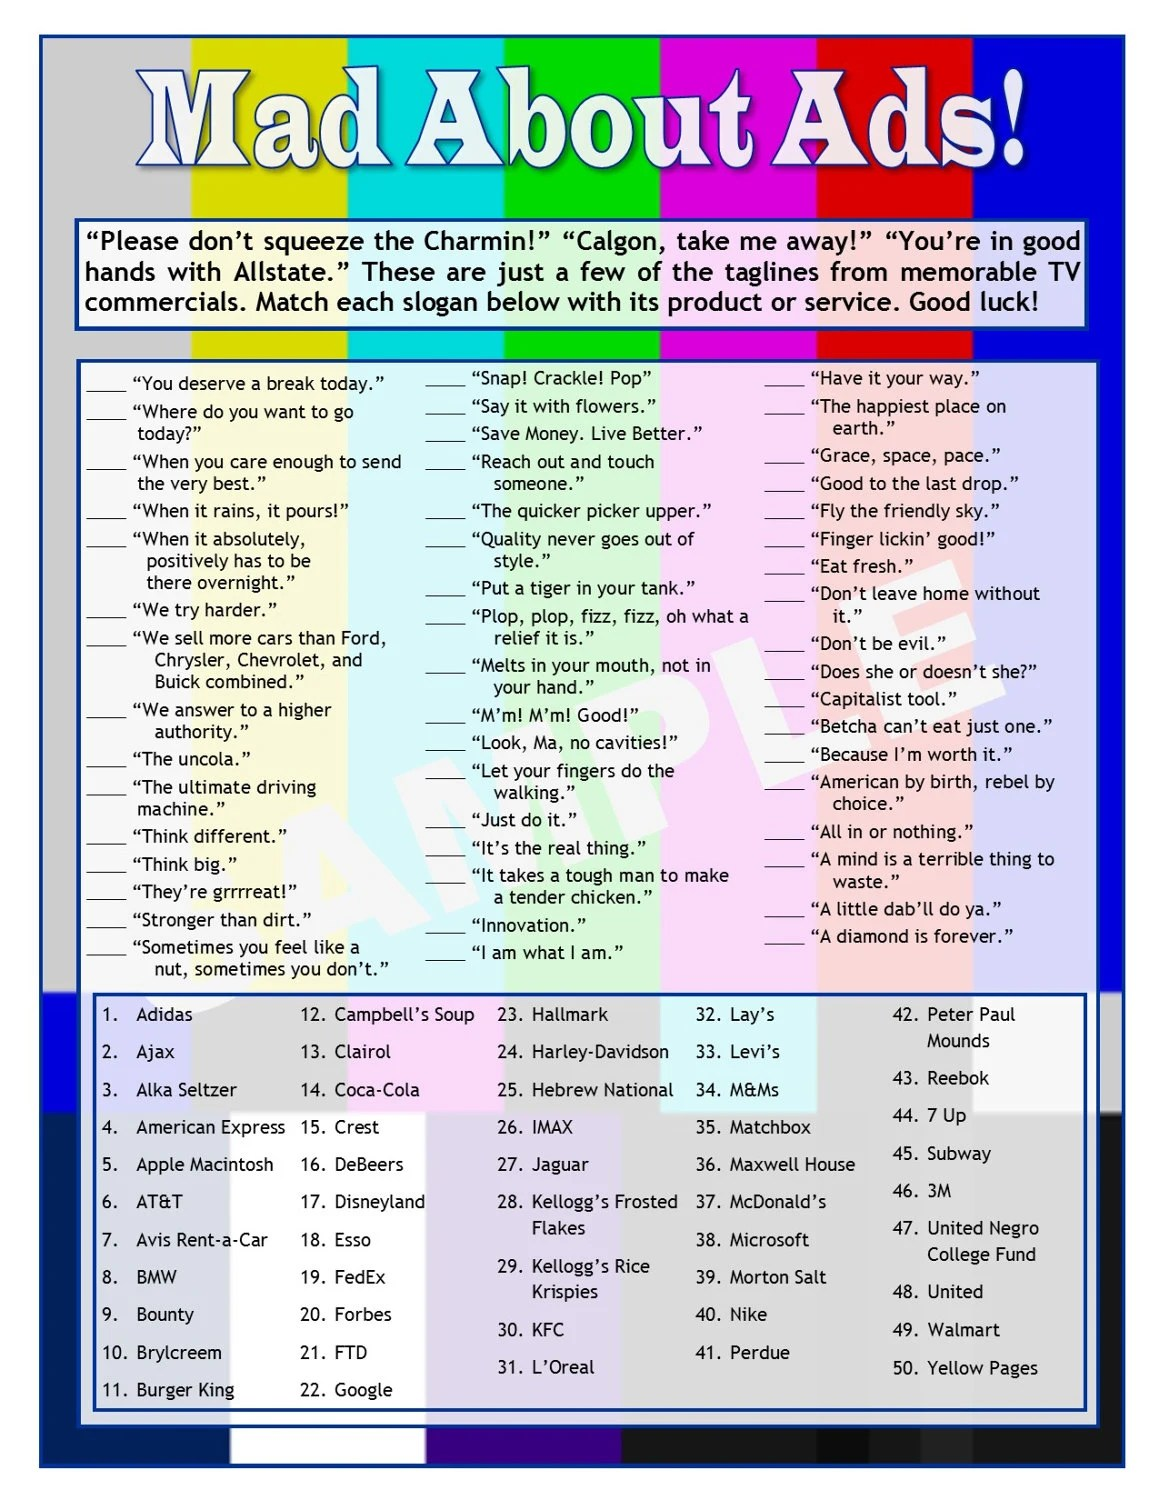 Mad About Ads Tv Slogans Printable Matching Game Tv Trivia